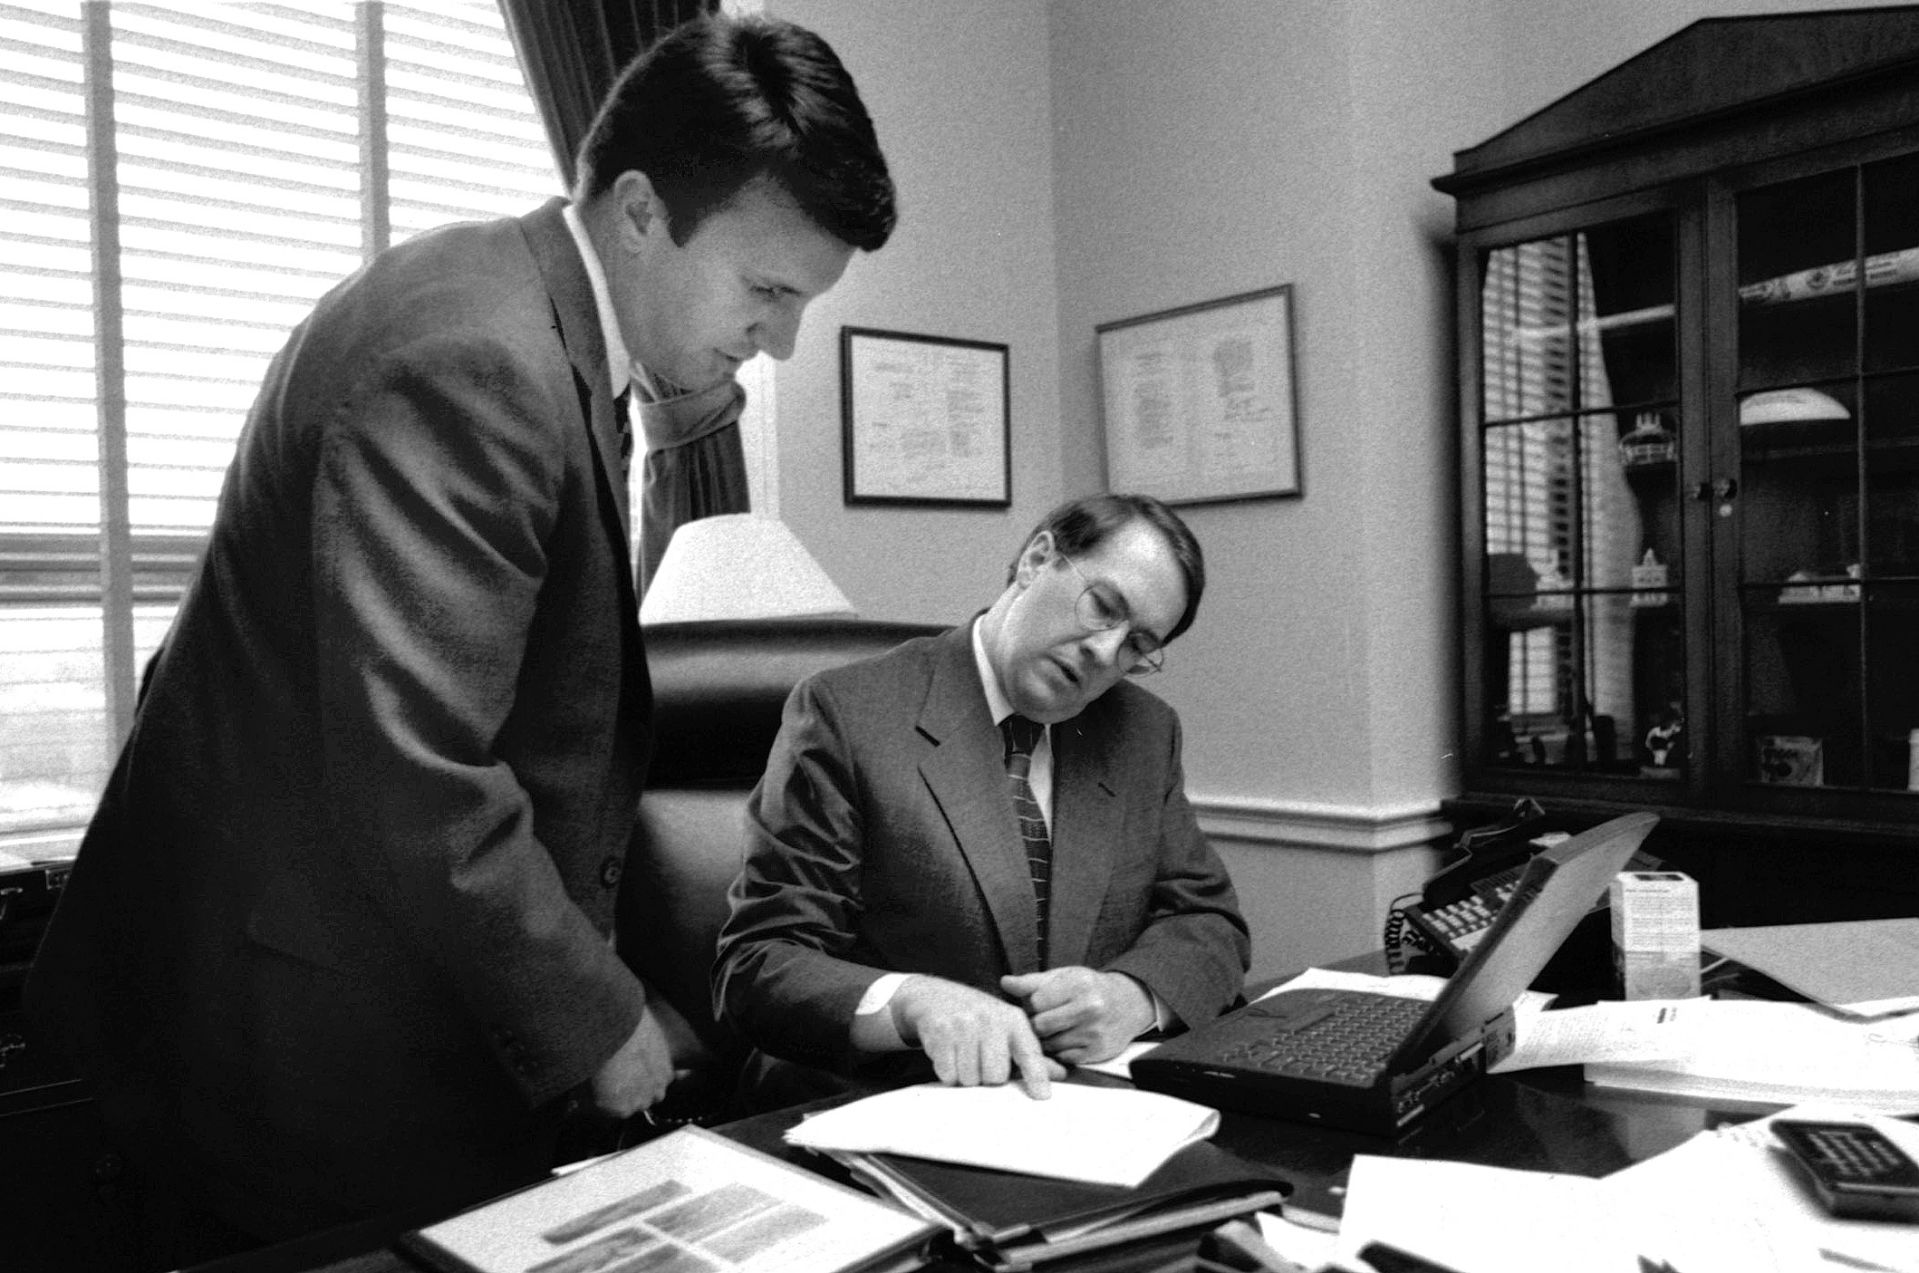 In July 1999, Ben Cline '94 (left) confers with Rep. Bob Goodlatte '74, R-Va., in Goodlatte's office in the Rayburn House Office Building. A the time, Cline was Goodlatte's legislative director. (Phyllis Graber Jensen/Bates College)